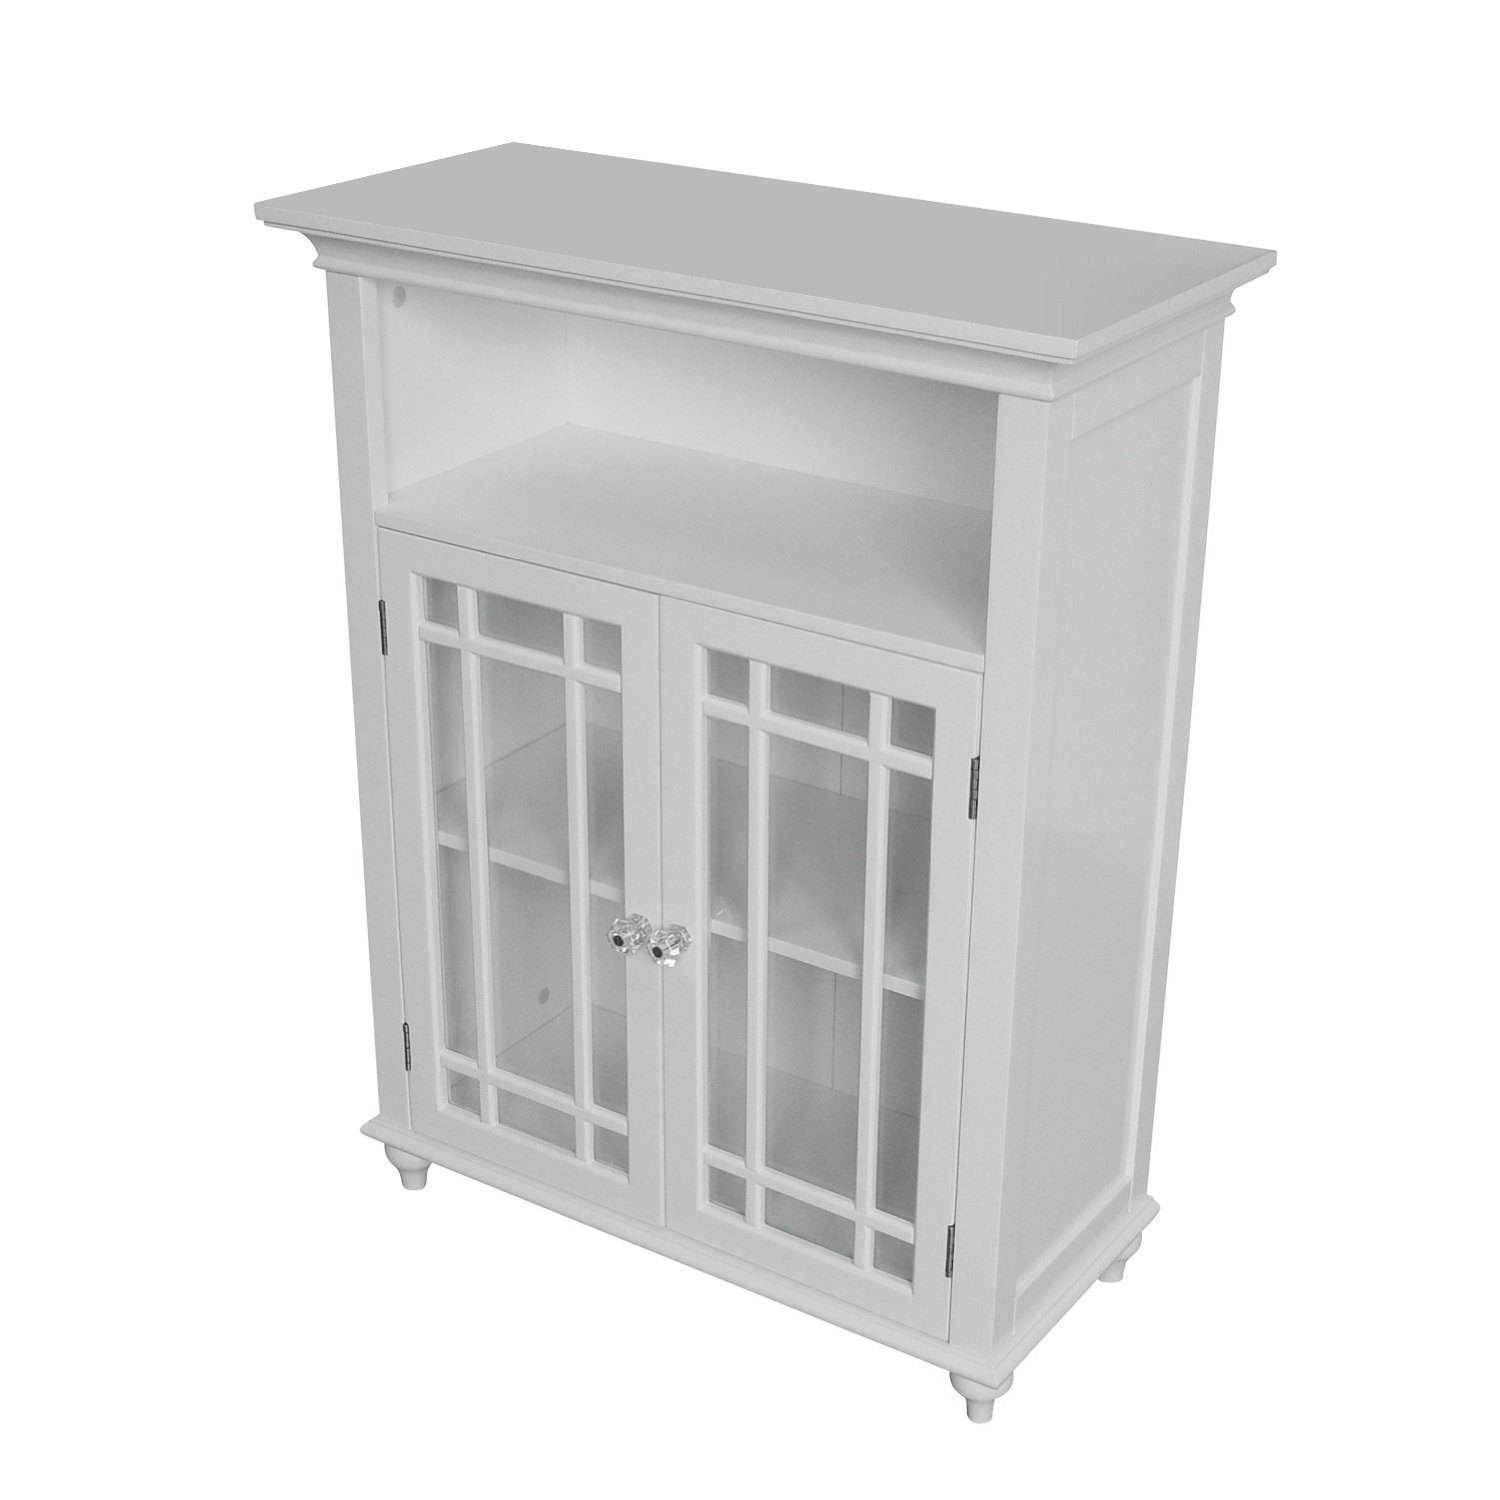 Tarragona White Floor Bathroom Cabinet : Awesome bathroom floor cabinet with doors review